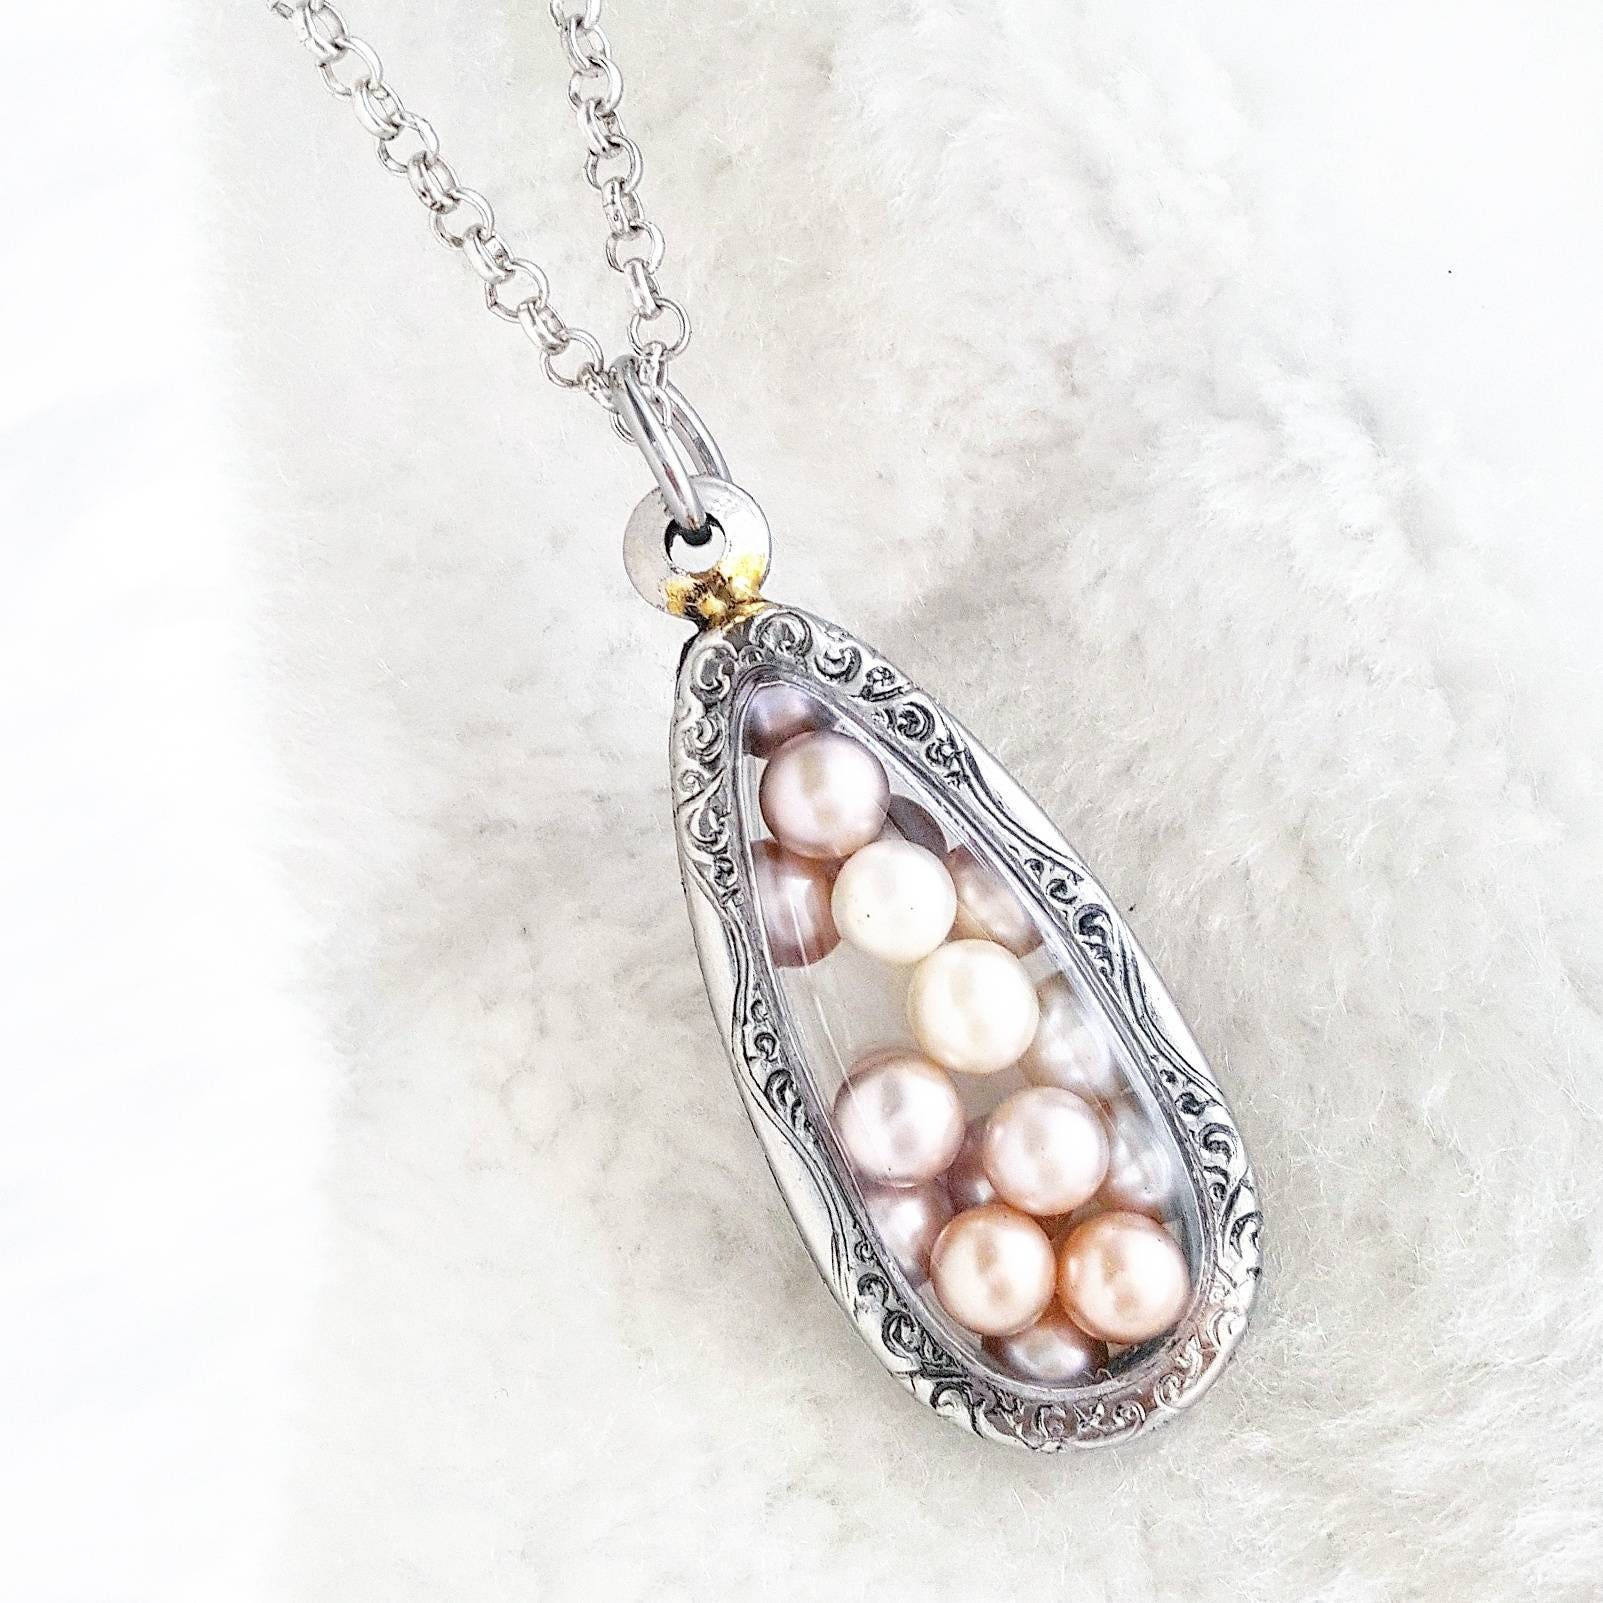 Pearl Necklace Akoya: Akoya Pearl Cage Terrarium Necklace For Pick A Pearl Akoya